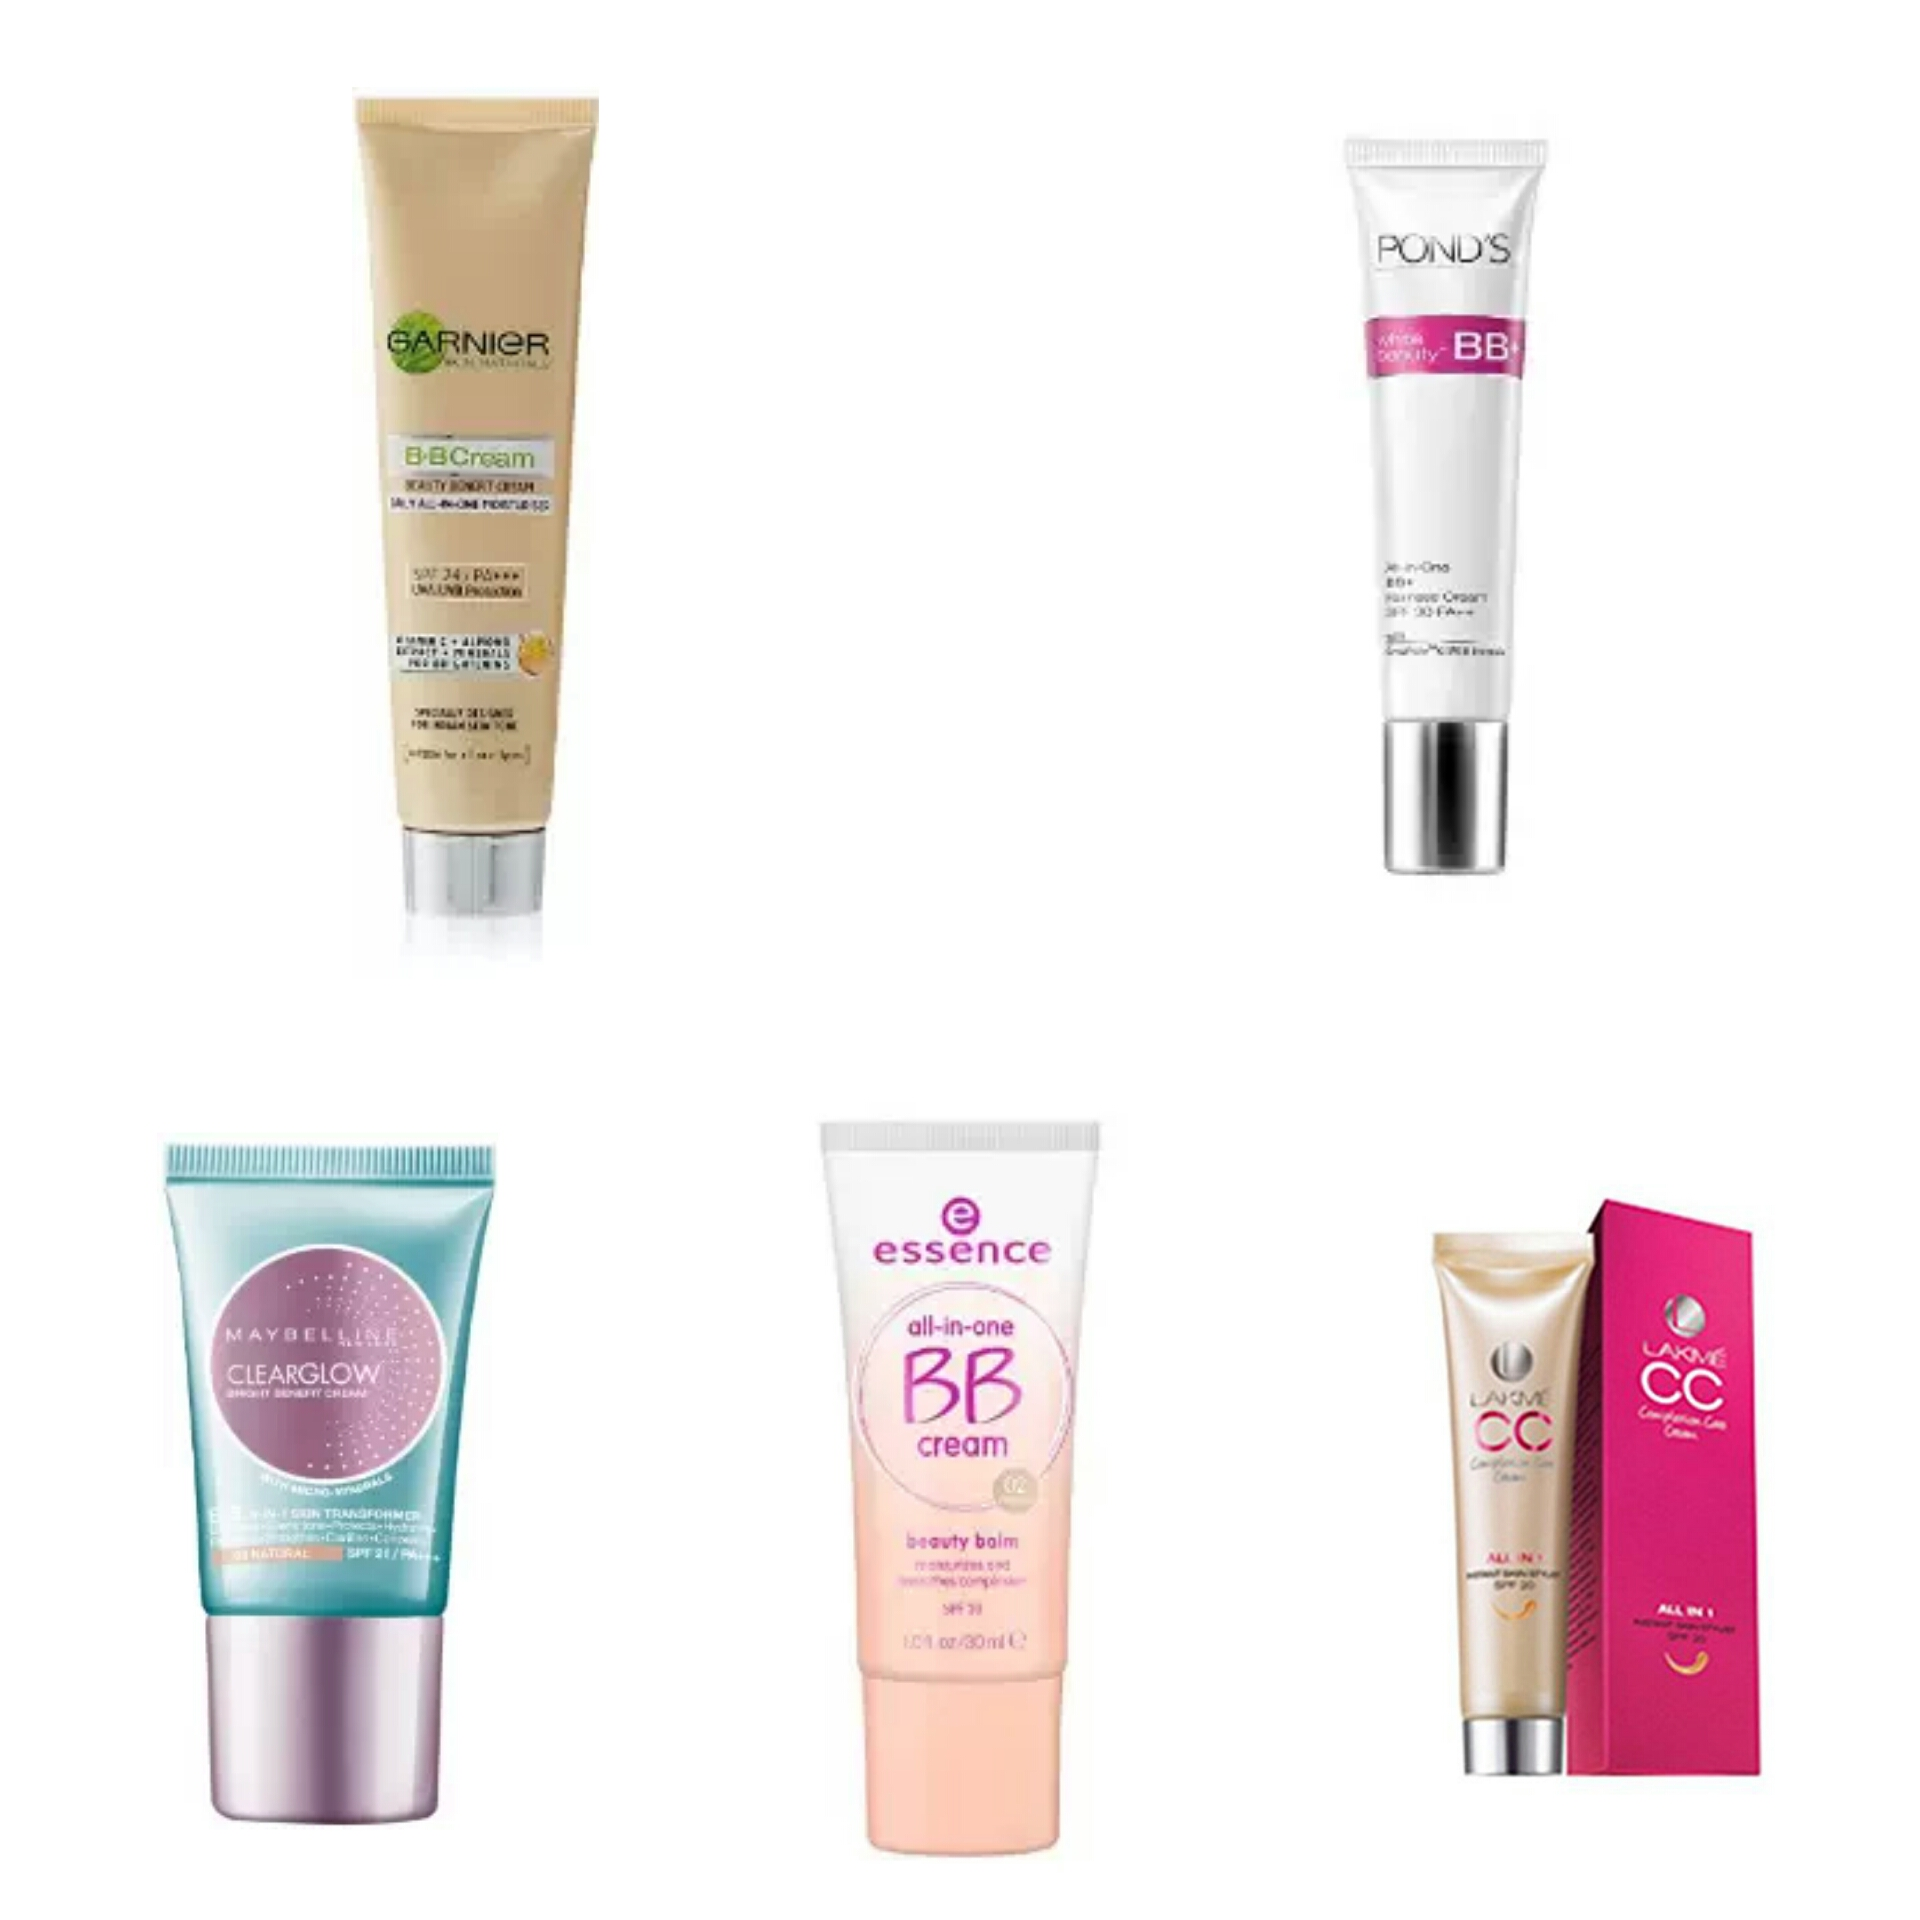 Affordable Makeup Products For College Going Girls | Affordable BB Creams In India | Affordable CC Creams In India